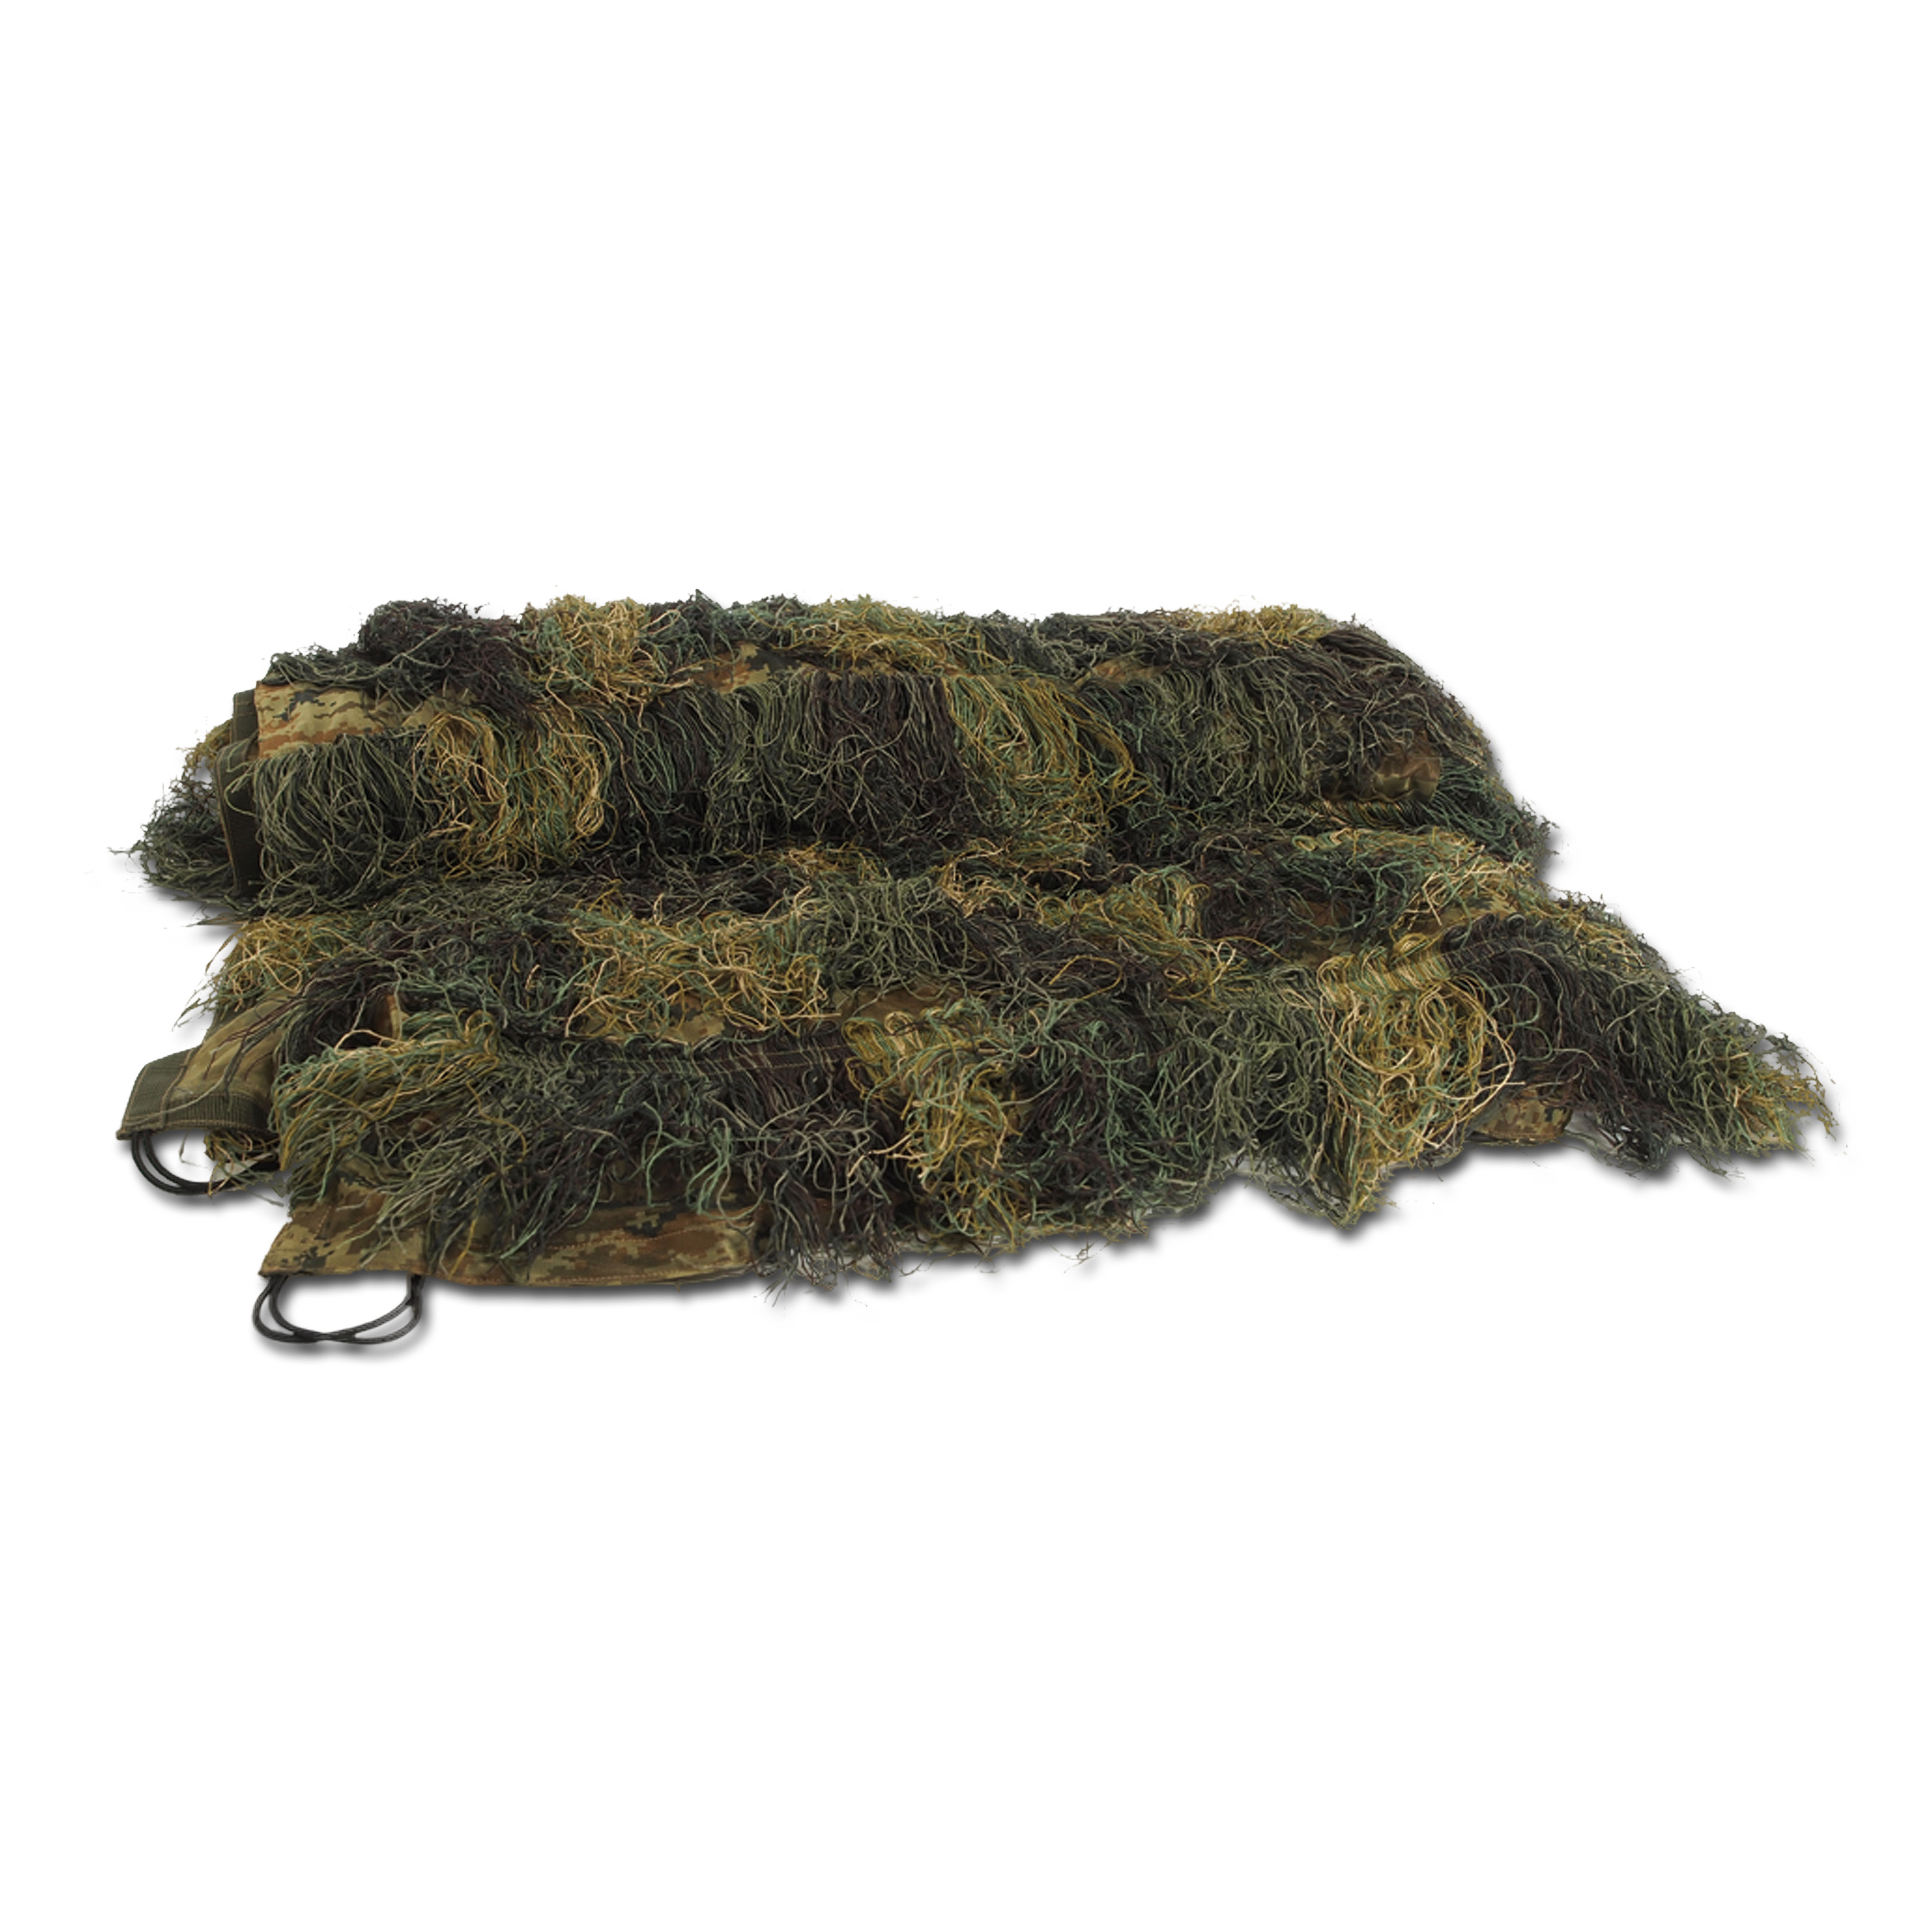 Ghillie Cover Mil-Tec Anti-Fire 300x200 cm